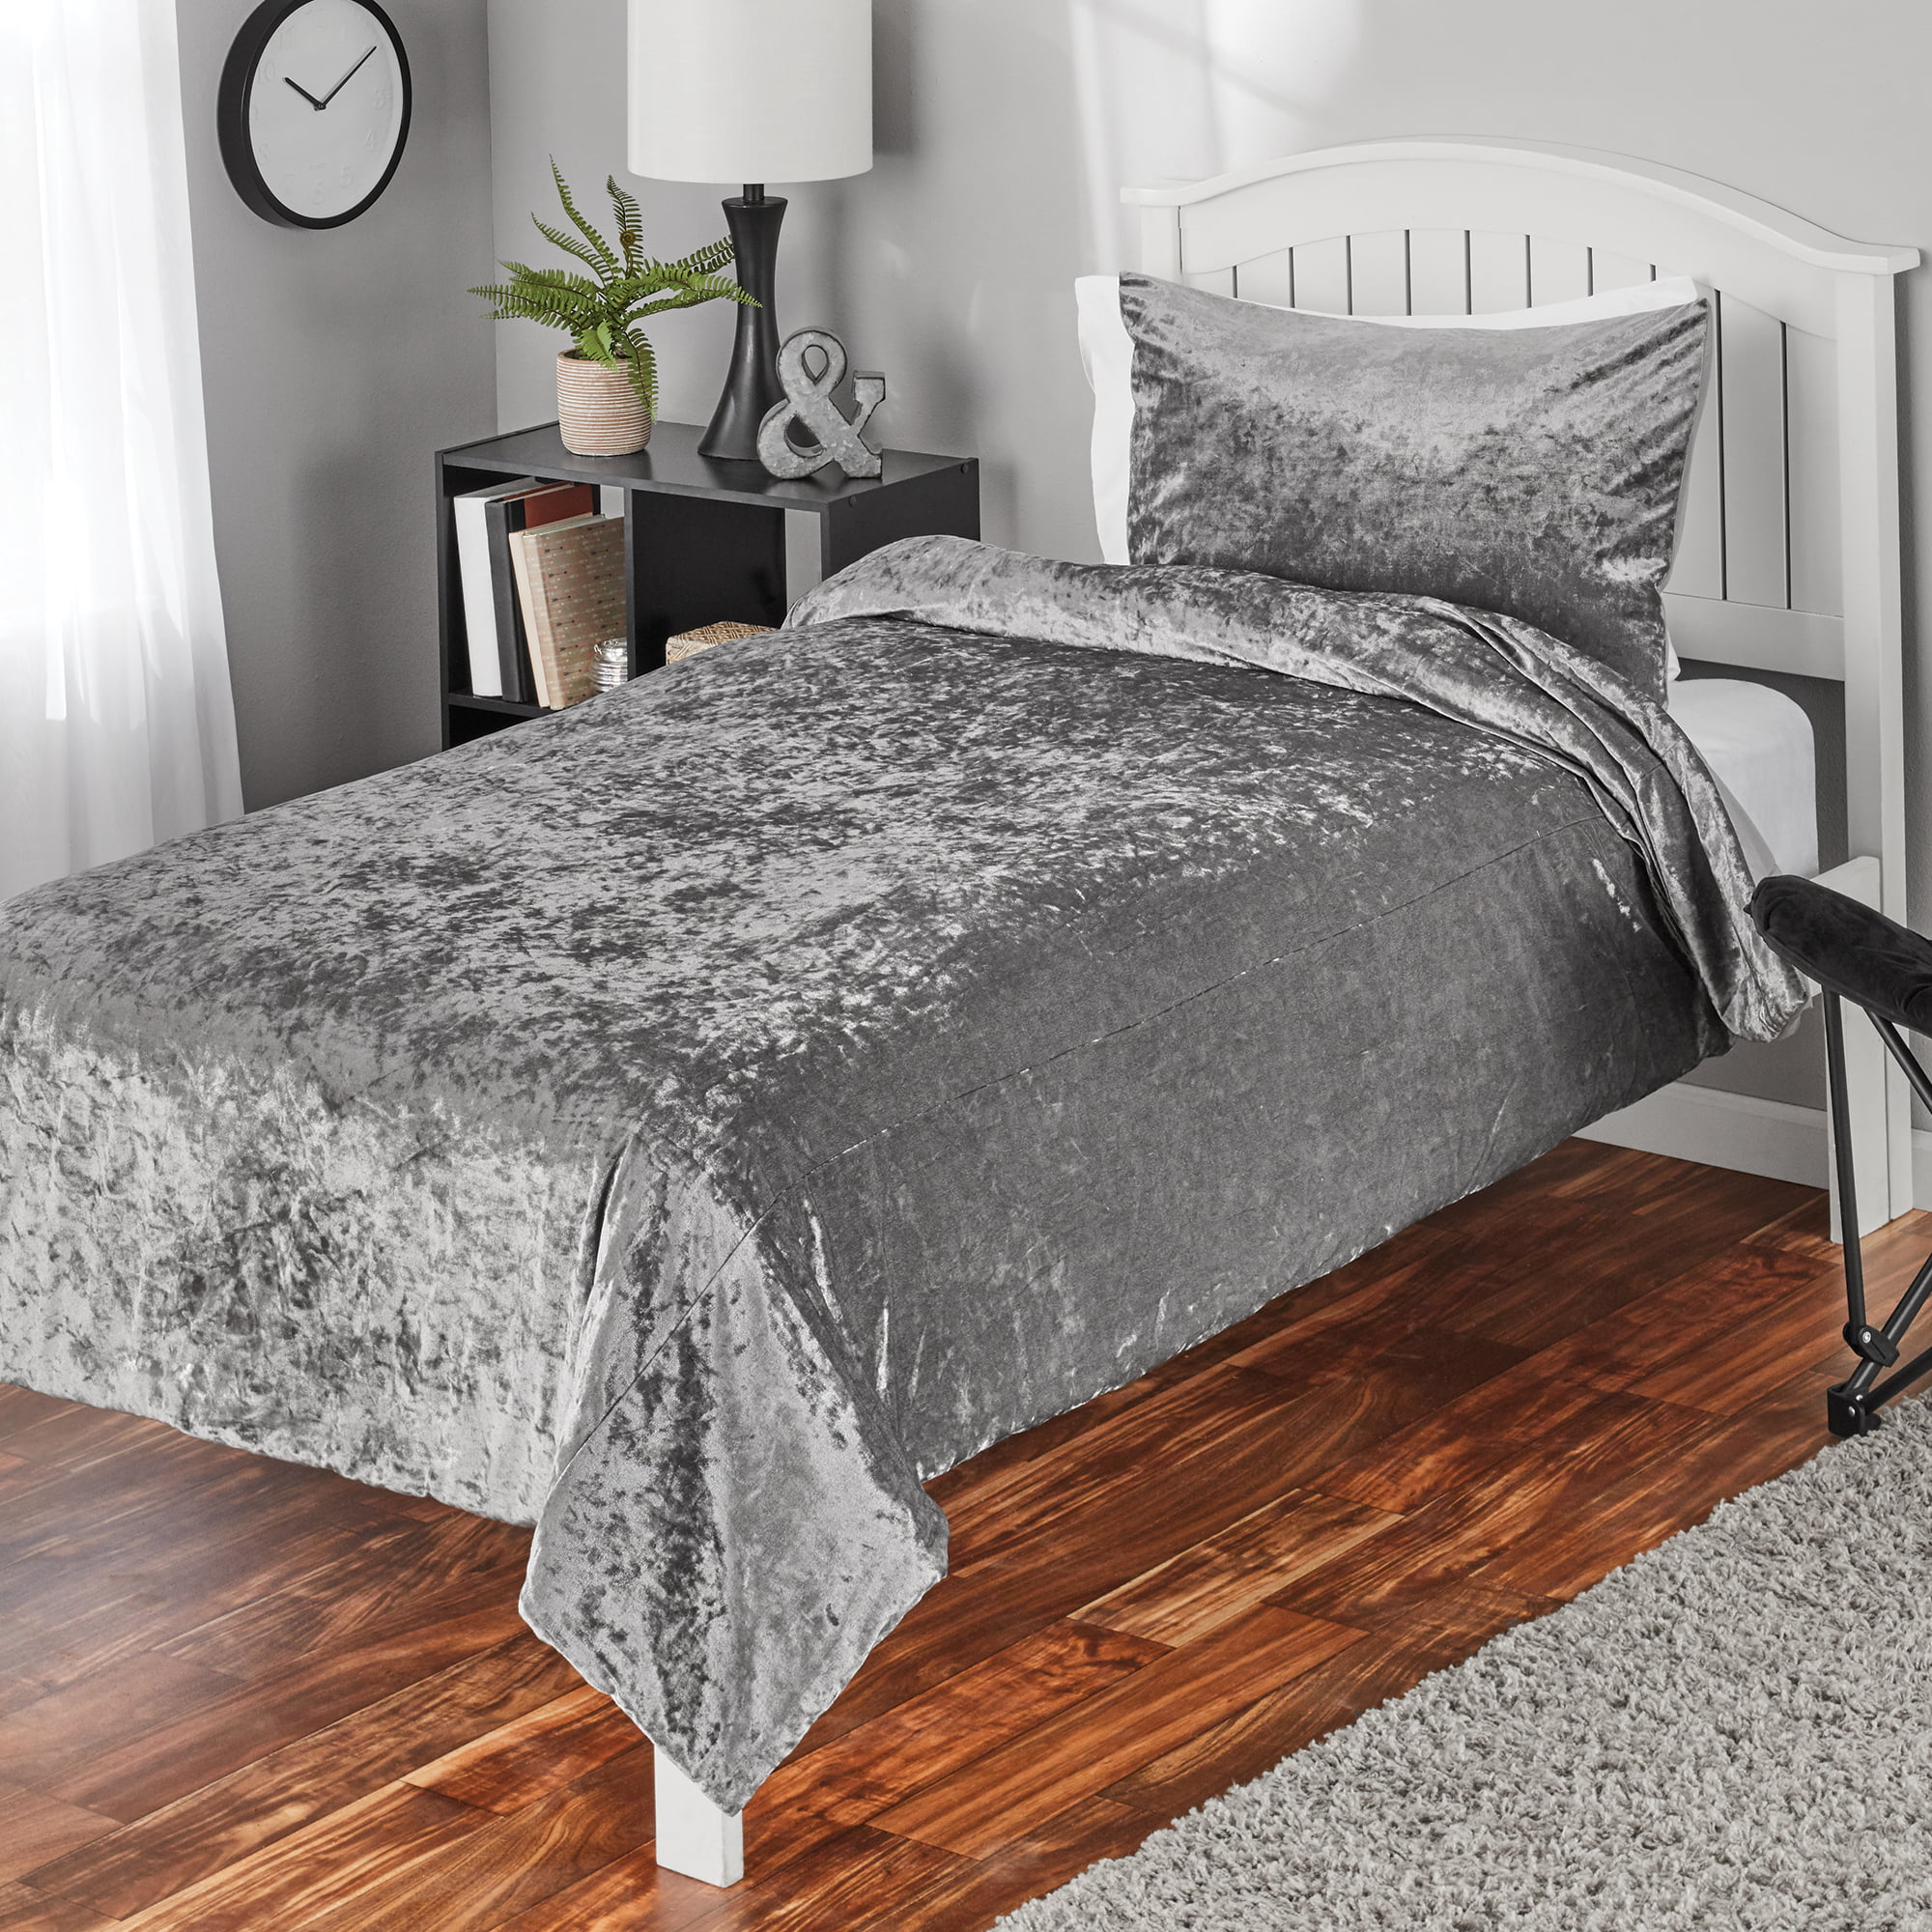 Mainstays Crushed Velvet Comforter Bedding Mini Sets